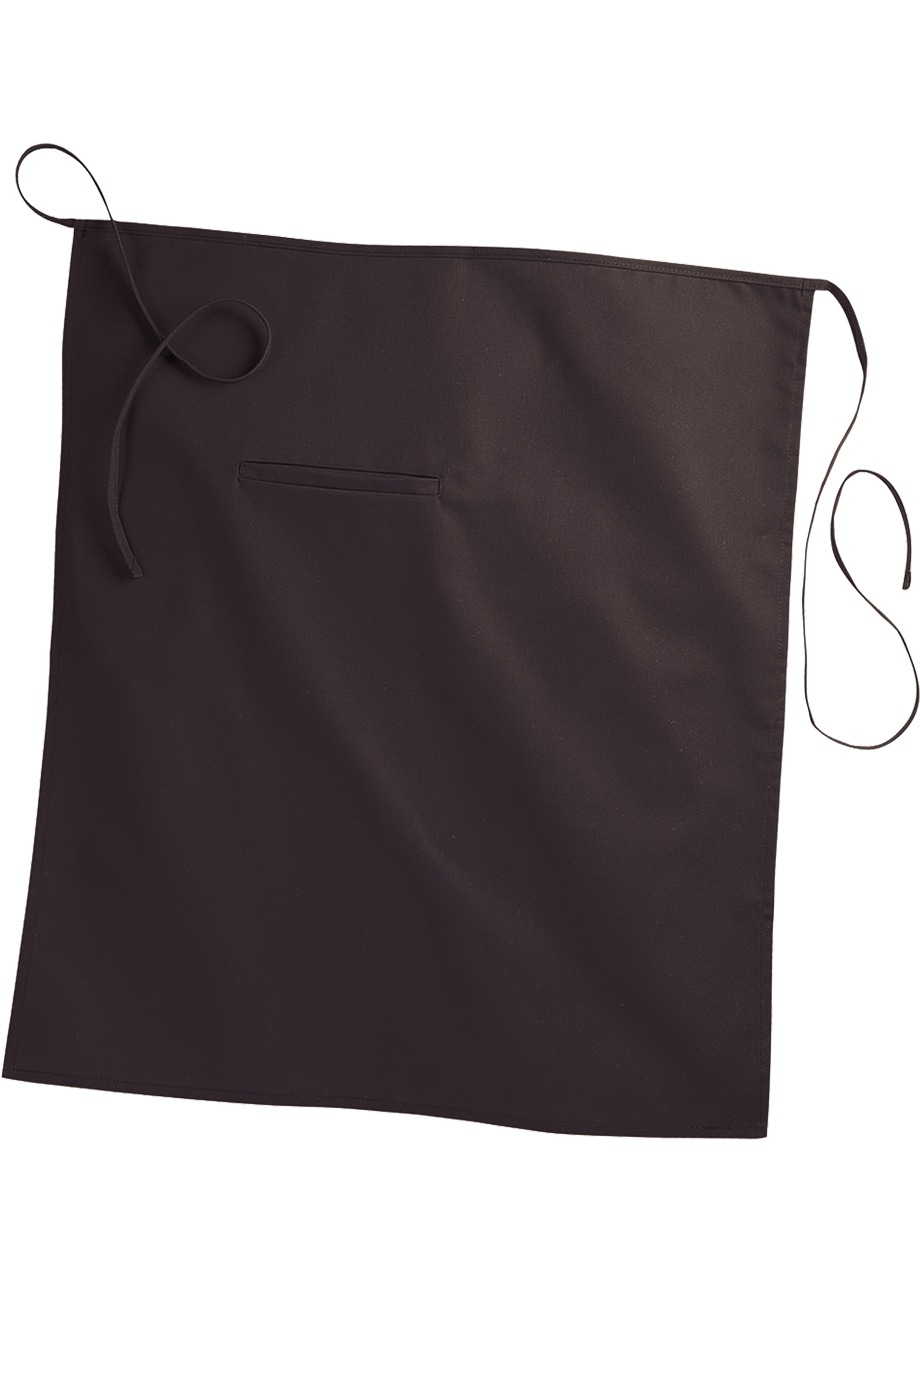 Edwards Garment 9013 - Bistro Apron